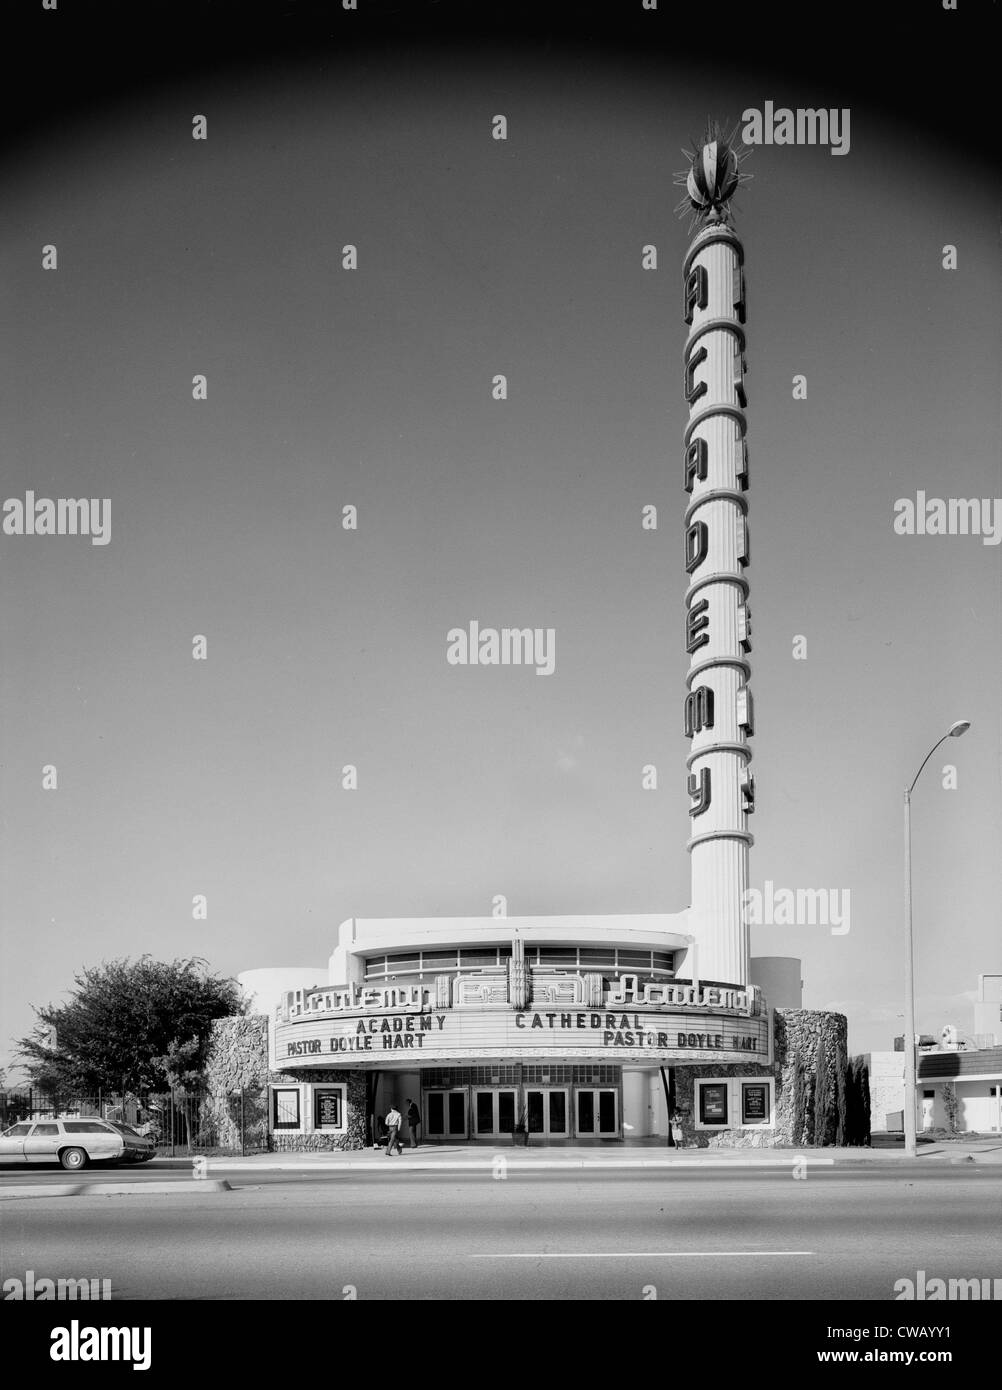 Movie Theaters  the Academy Theater  3141 West Manchester Boulevard  Inglewood  Los Angeles  California  circa 1970s. Movie Theaters  The Academy Theater  3141 West Manchester